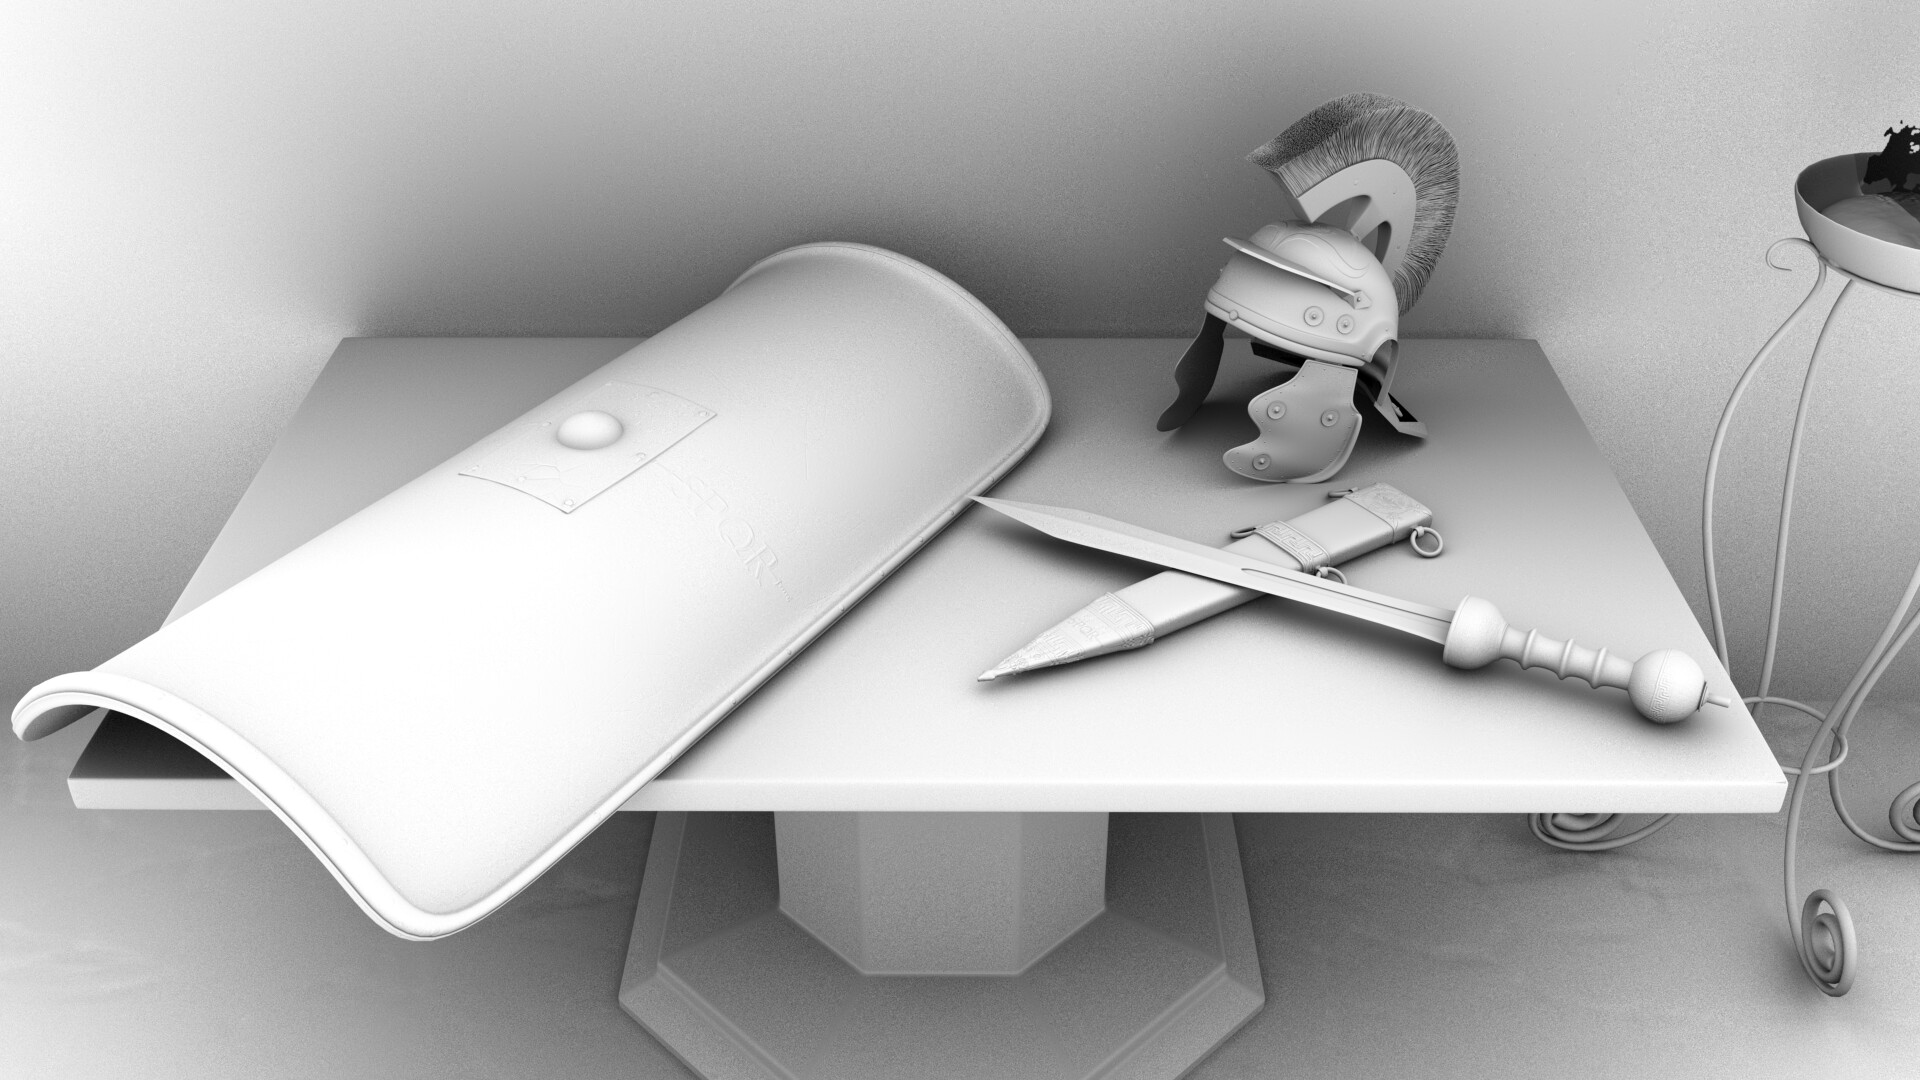 Shot 1 - Ambient Occlusion